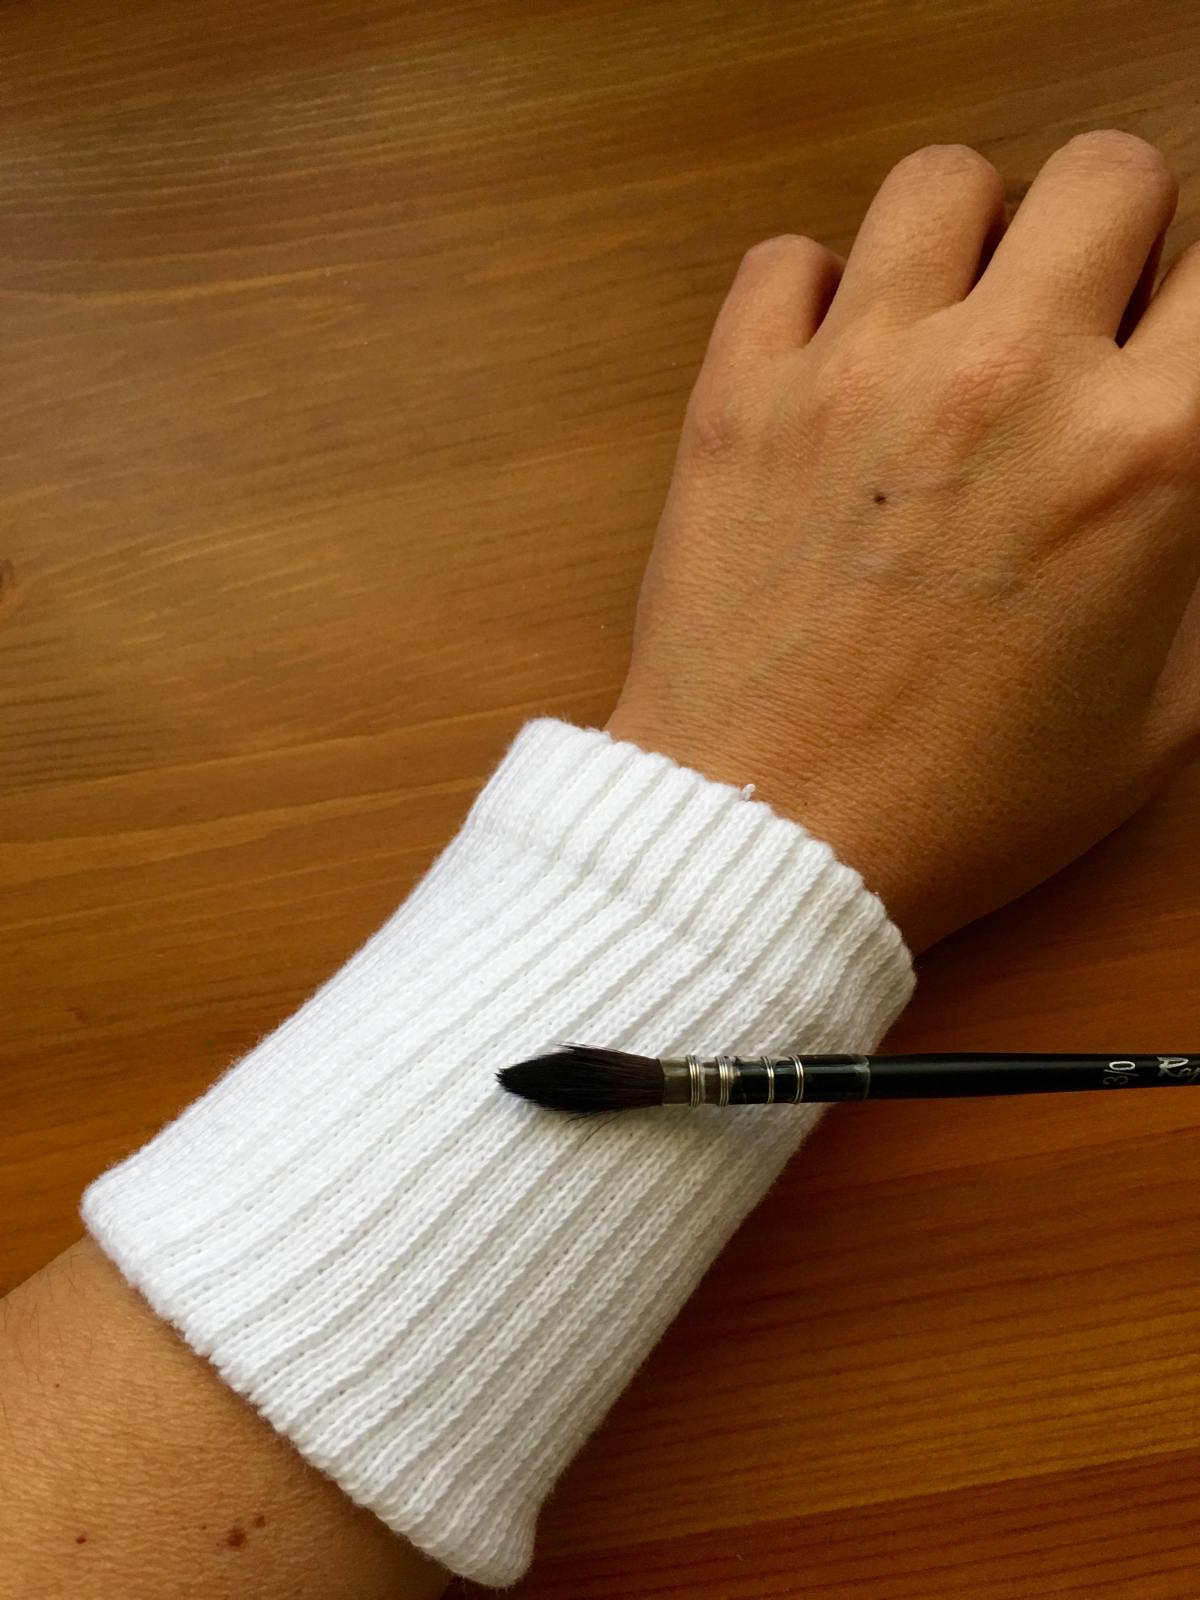 Tube sock around wrist to act as a watercolor brush wipe and watercolour brush